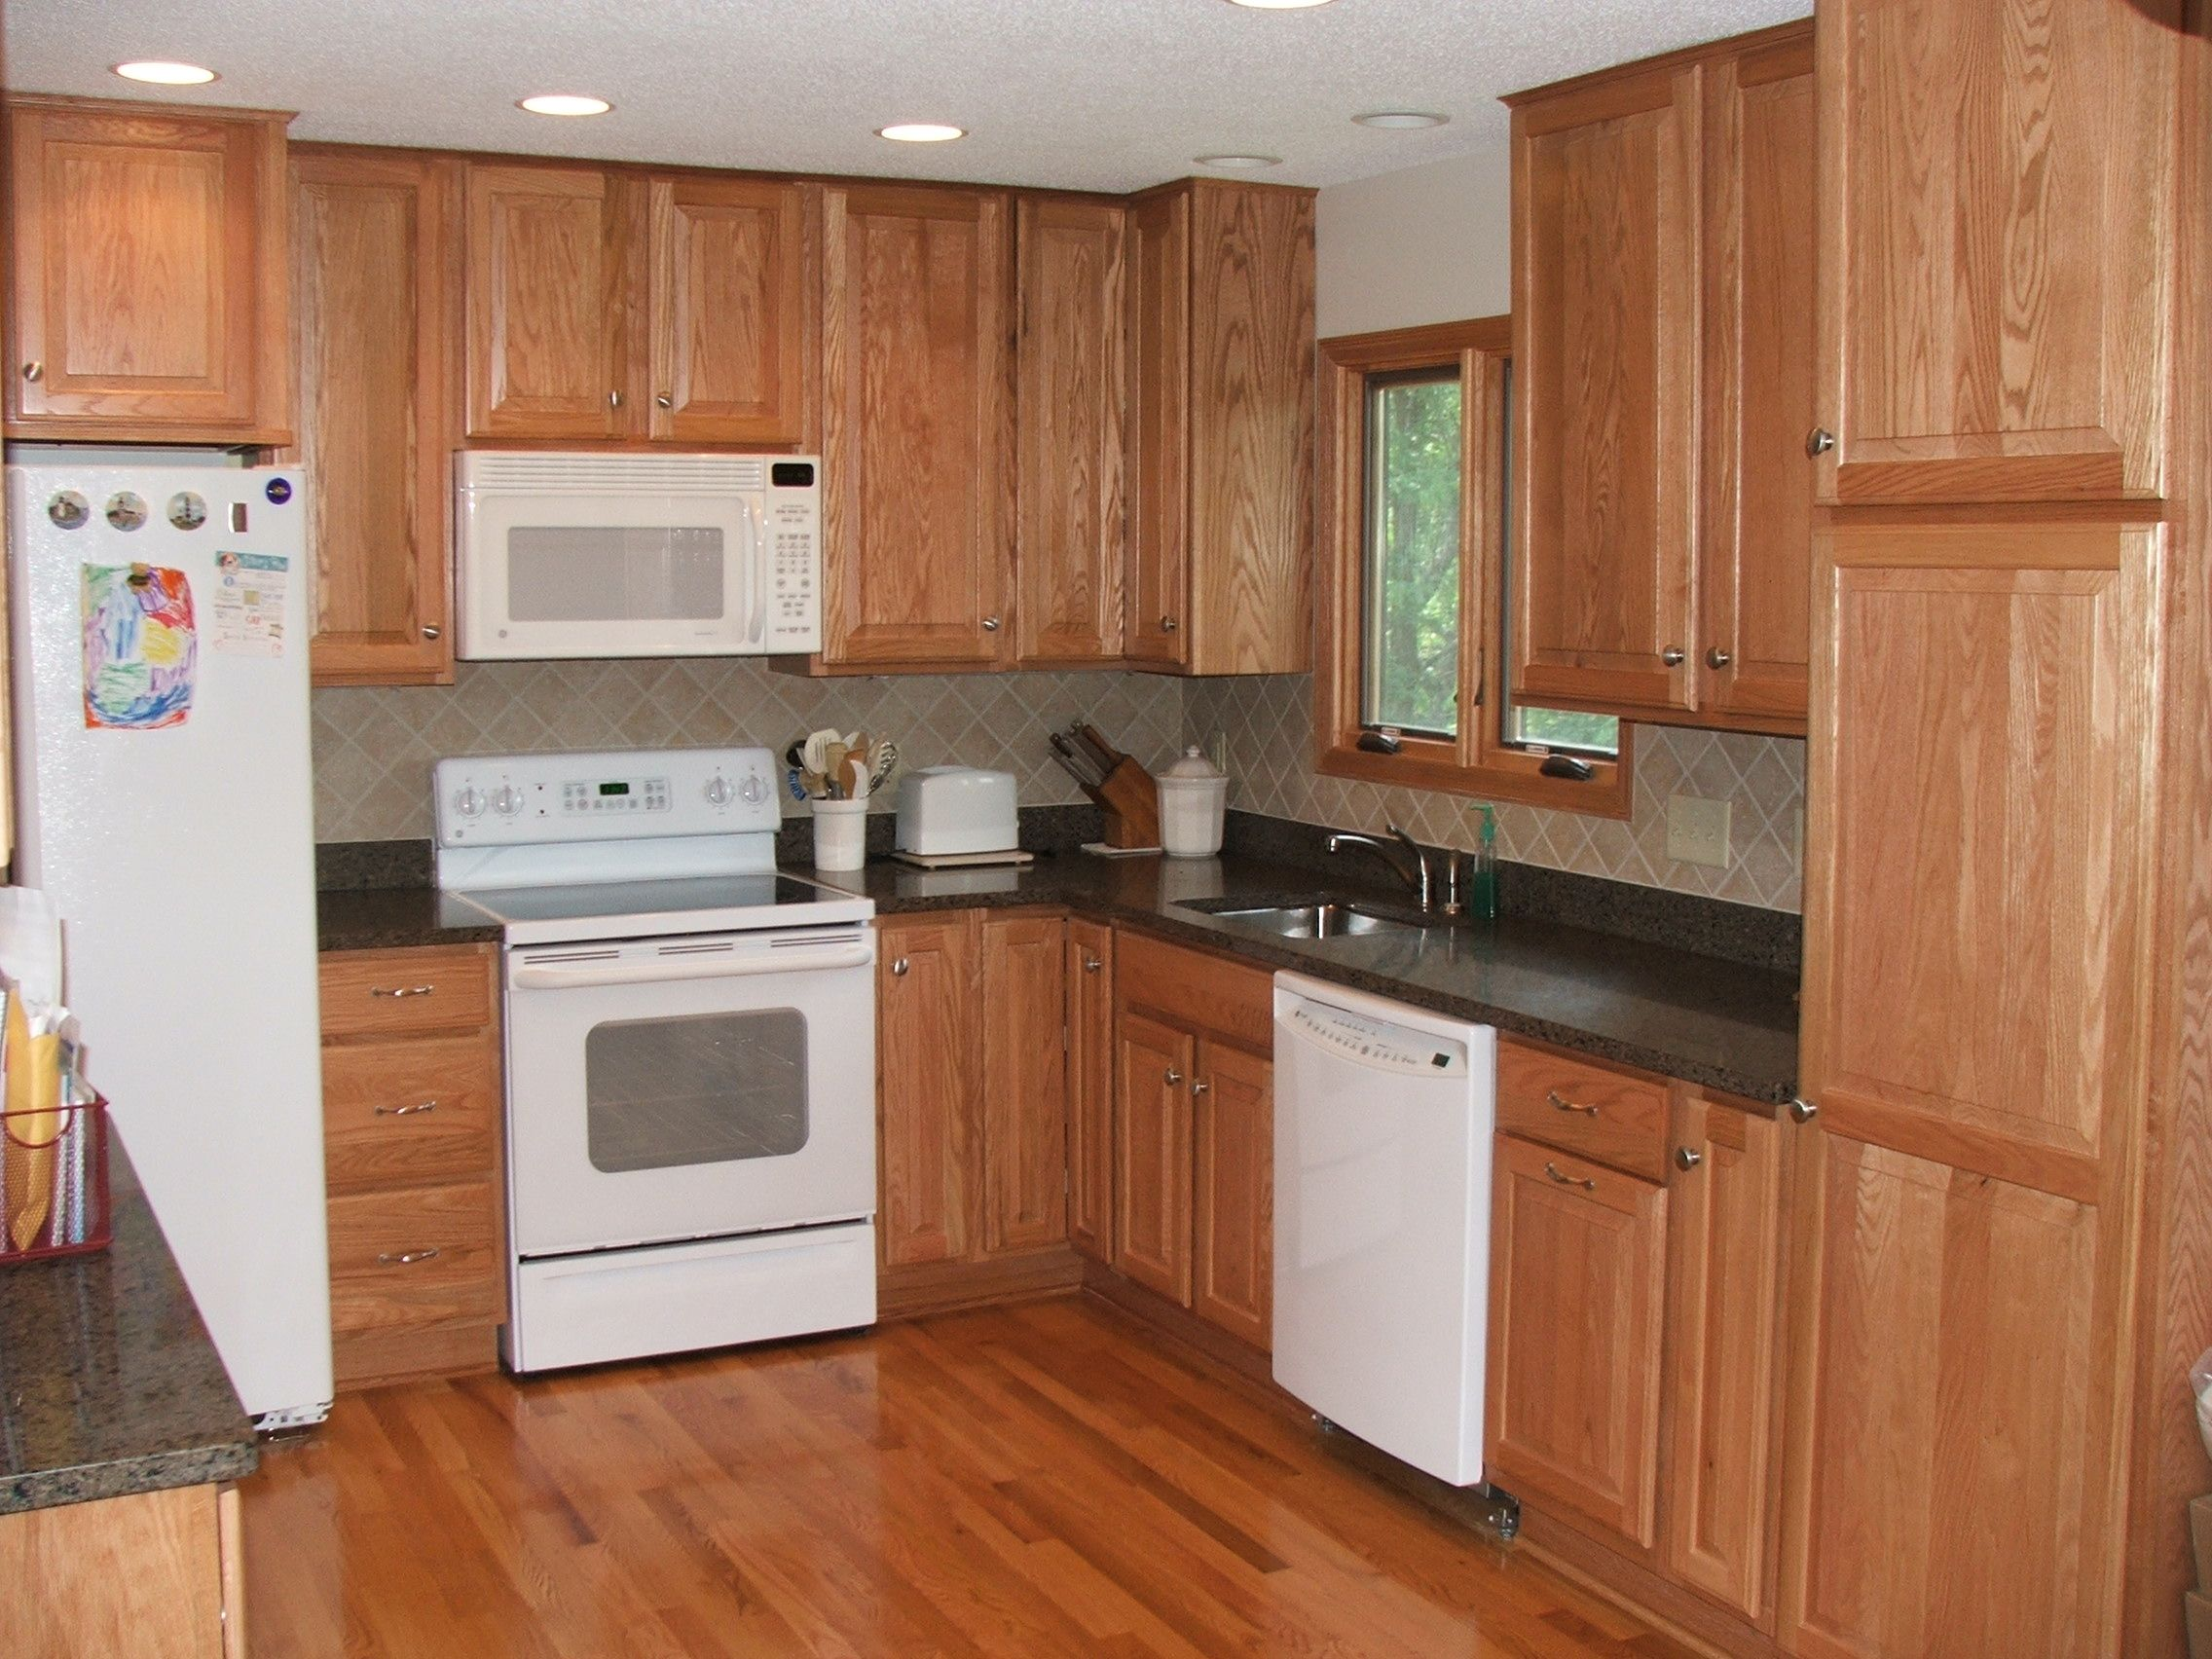 L Shaped Kitchens With Island Download Wallpaper L Shaped